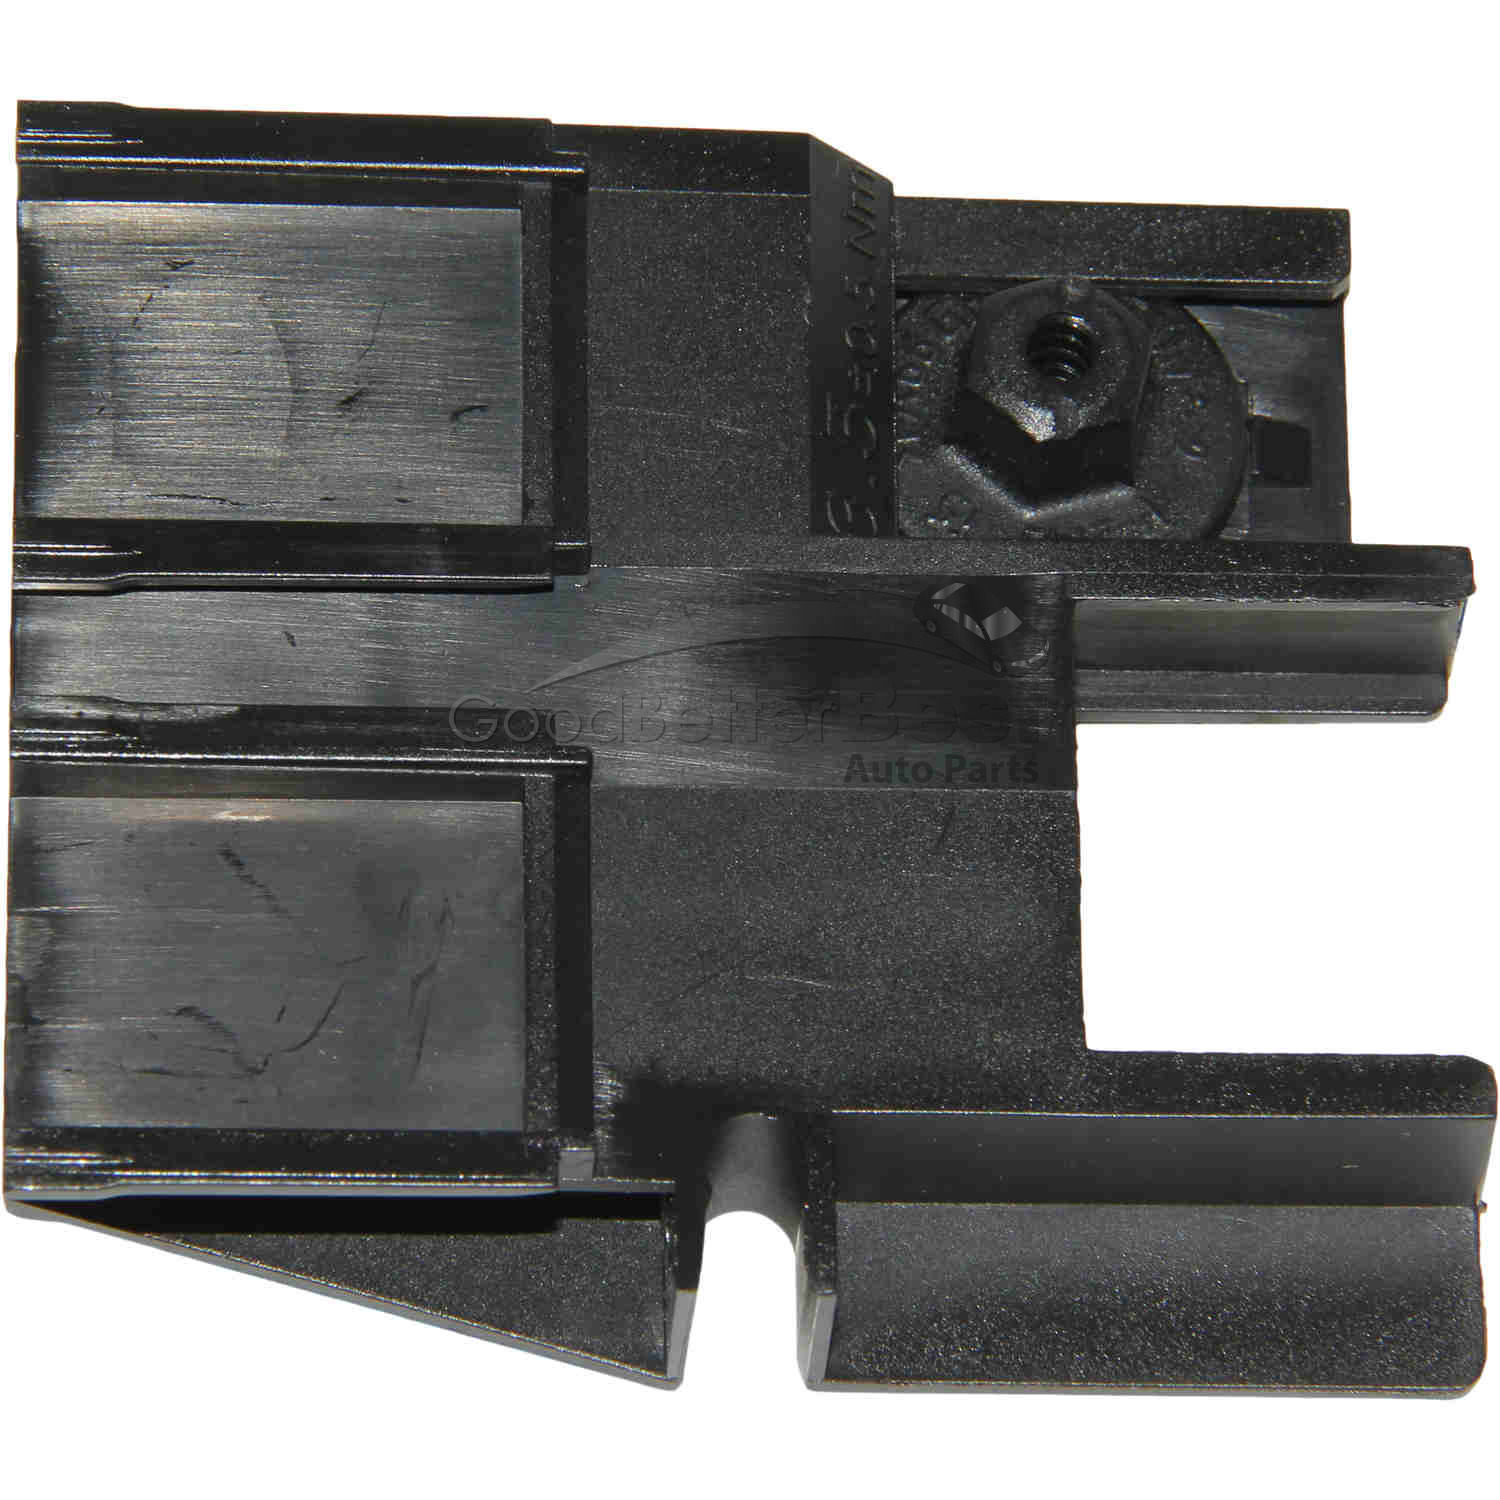 One New Genuine Fuse Box 2045400350 for Mercedes MB